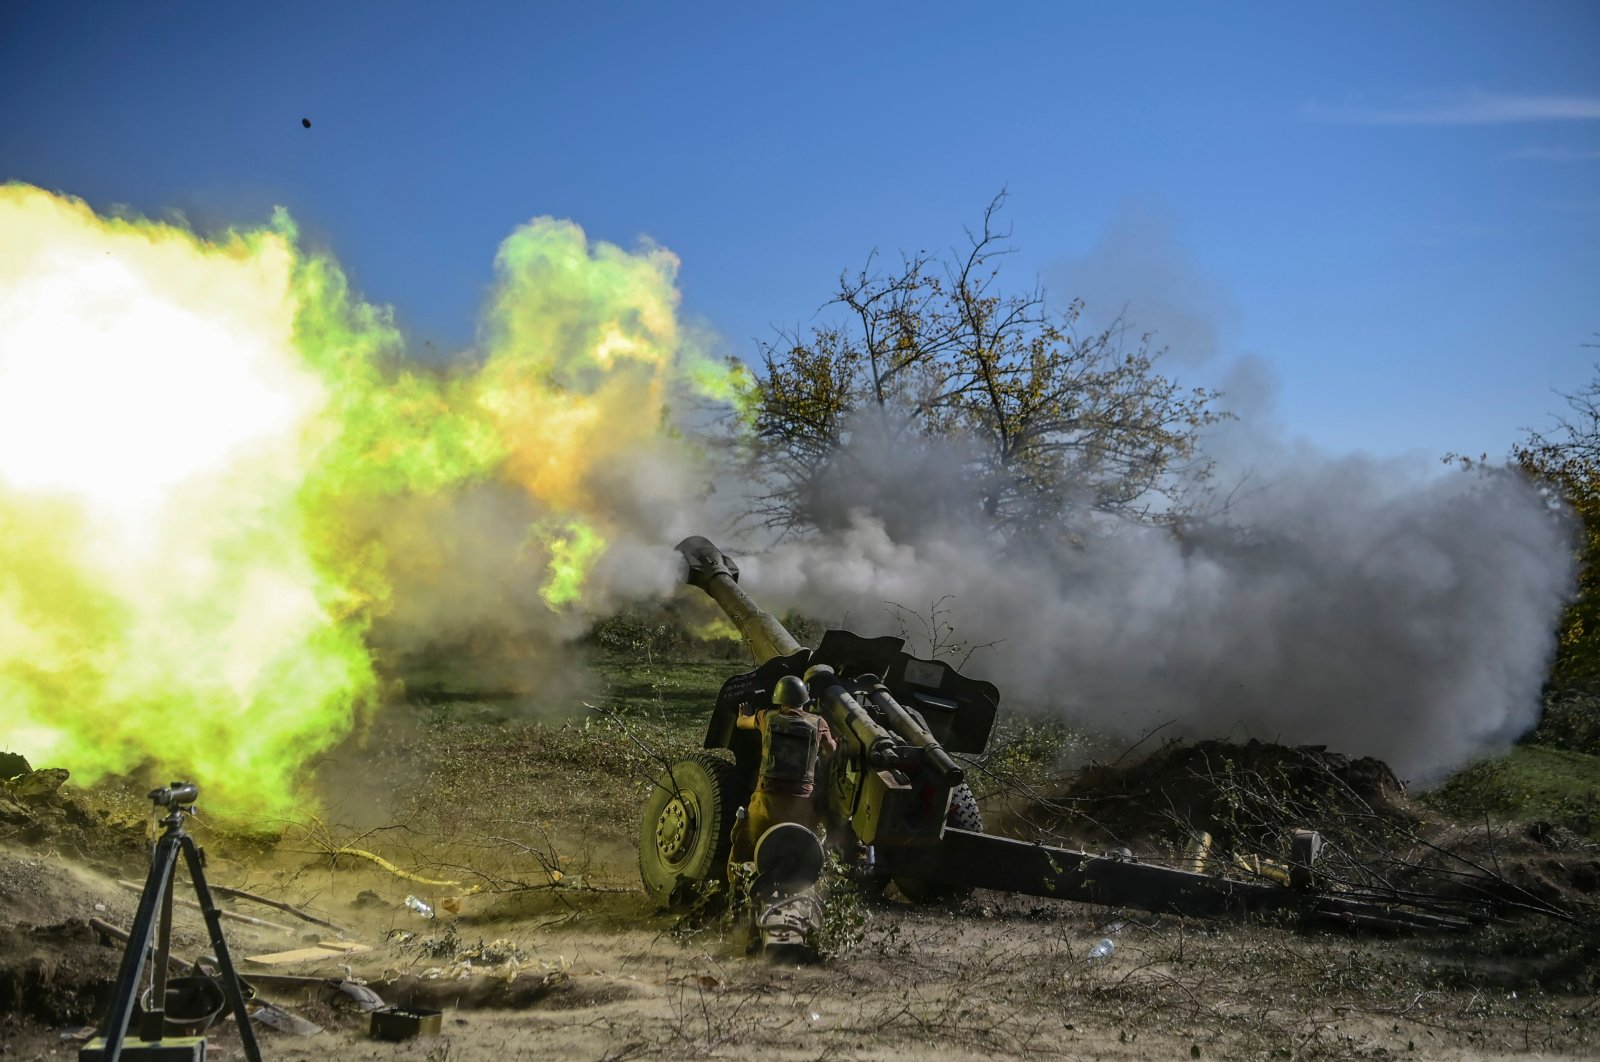 An Armenian soldier fires artillery on the front line during the ongoing fighting between Armenian and Azerbaijani forces over the region of Nagorno-Karabakh, Oct. 25, 2020. (AFP)